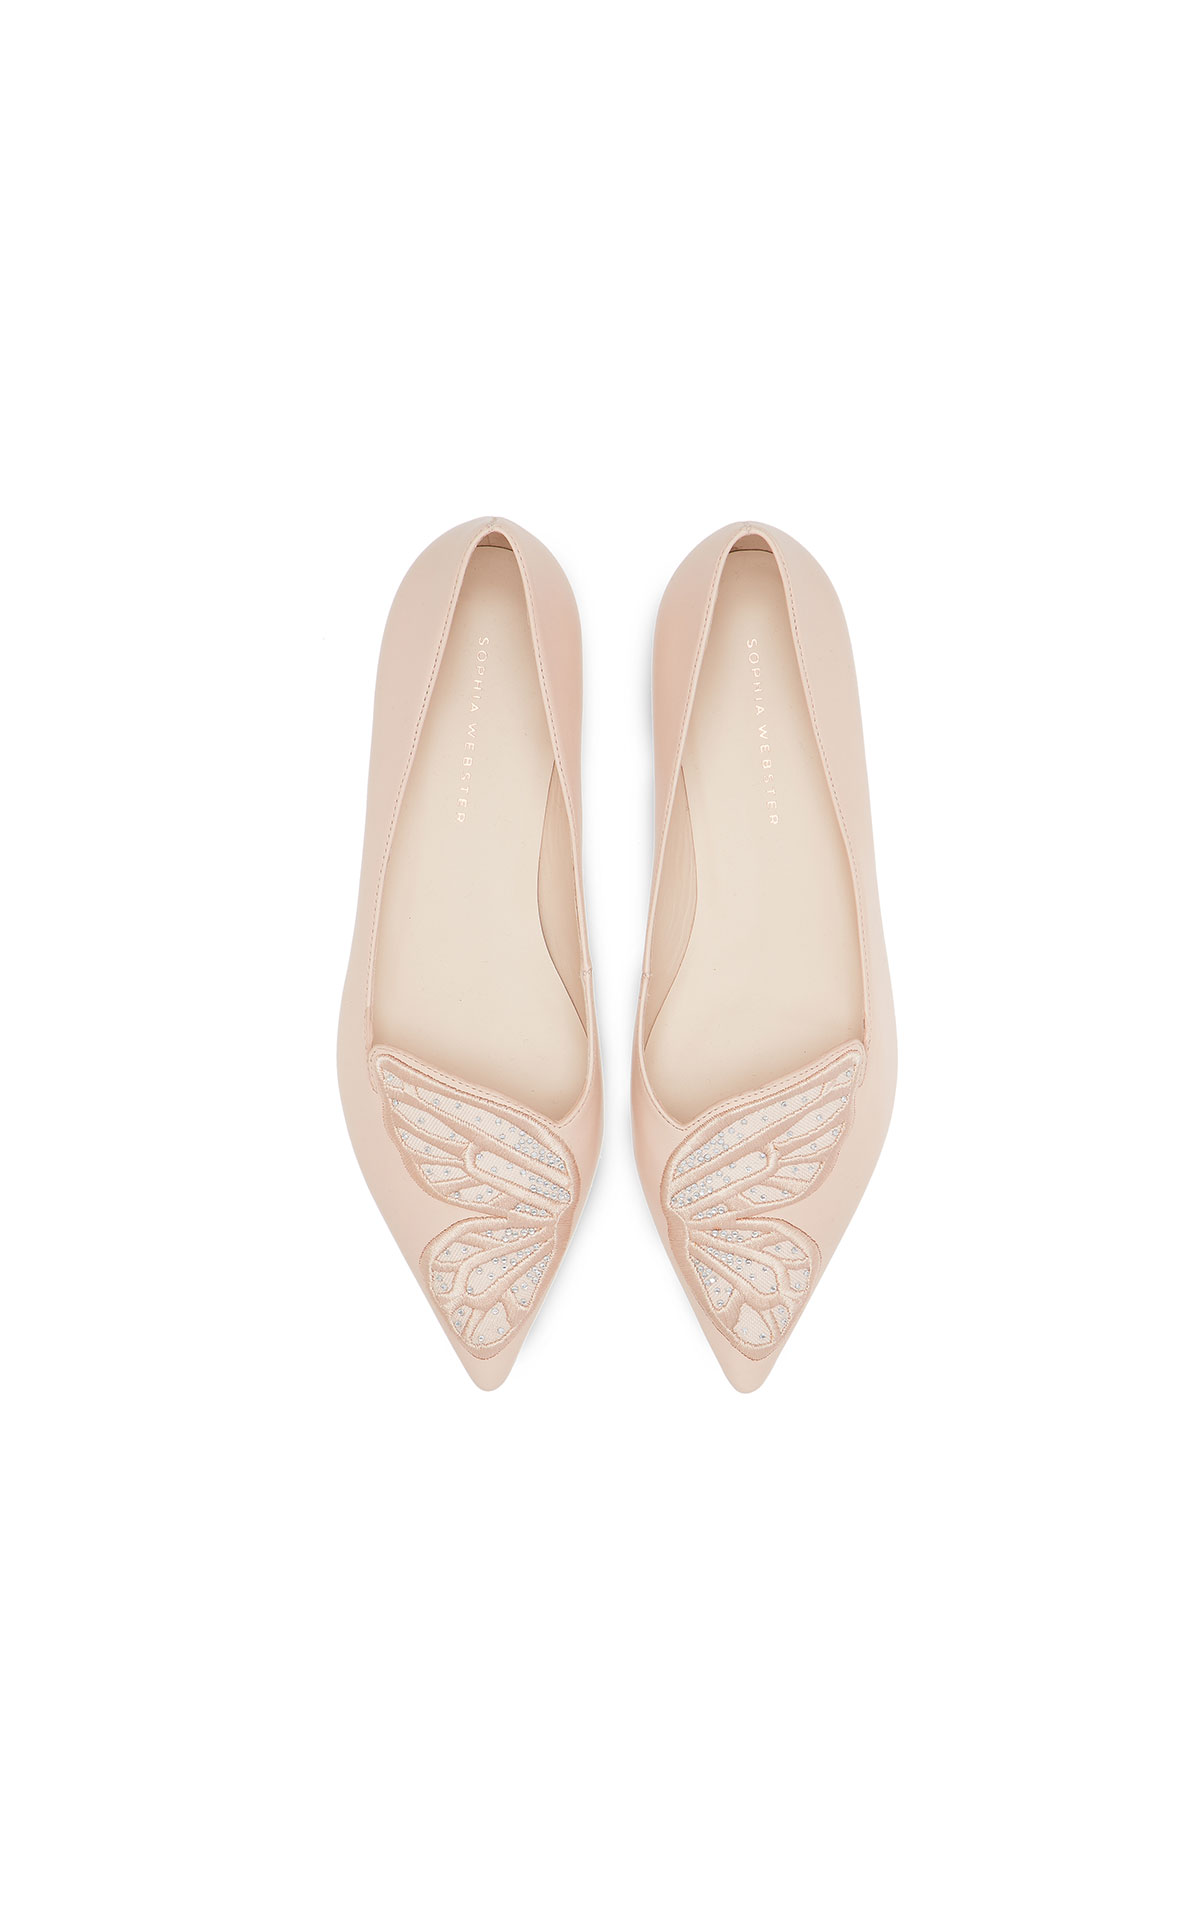 Barefoot Chic Sophia Webster Butterfly mesh flat from Bicester Village